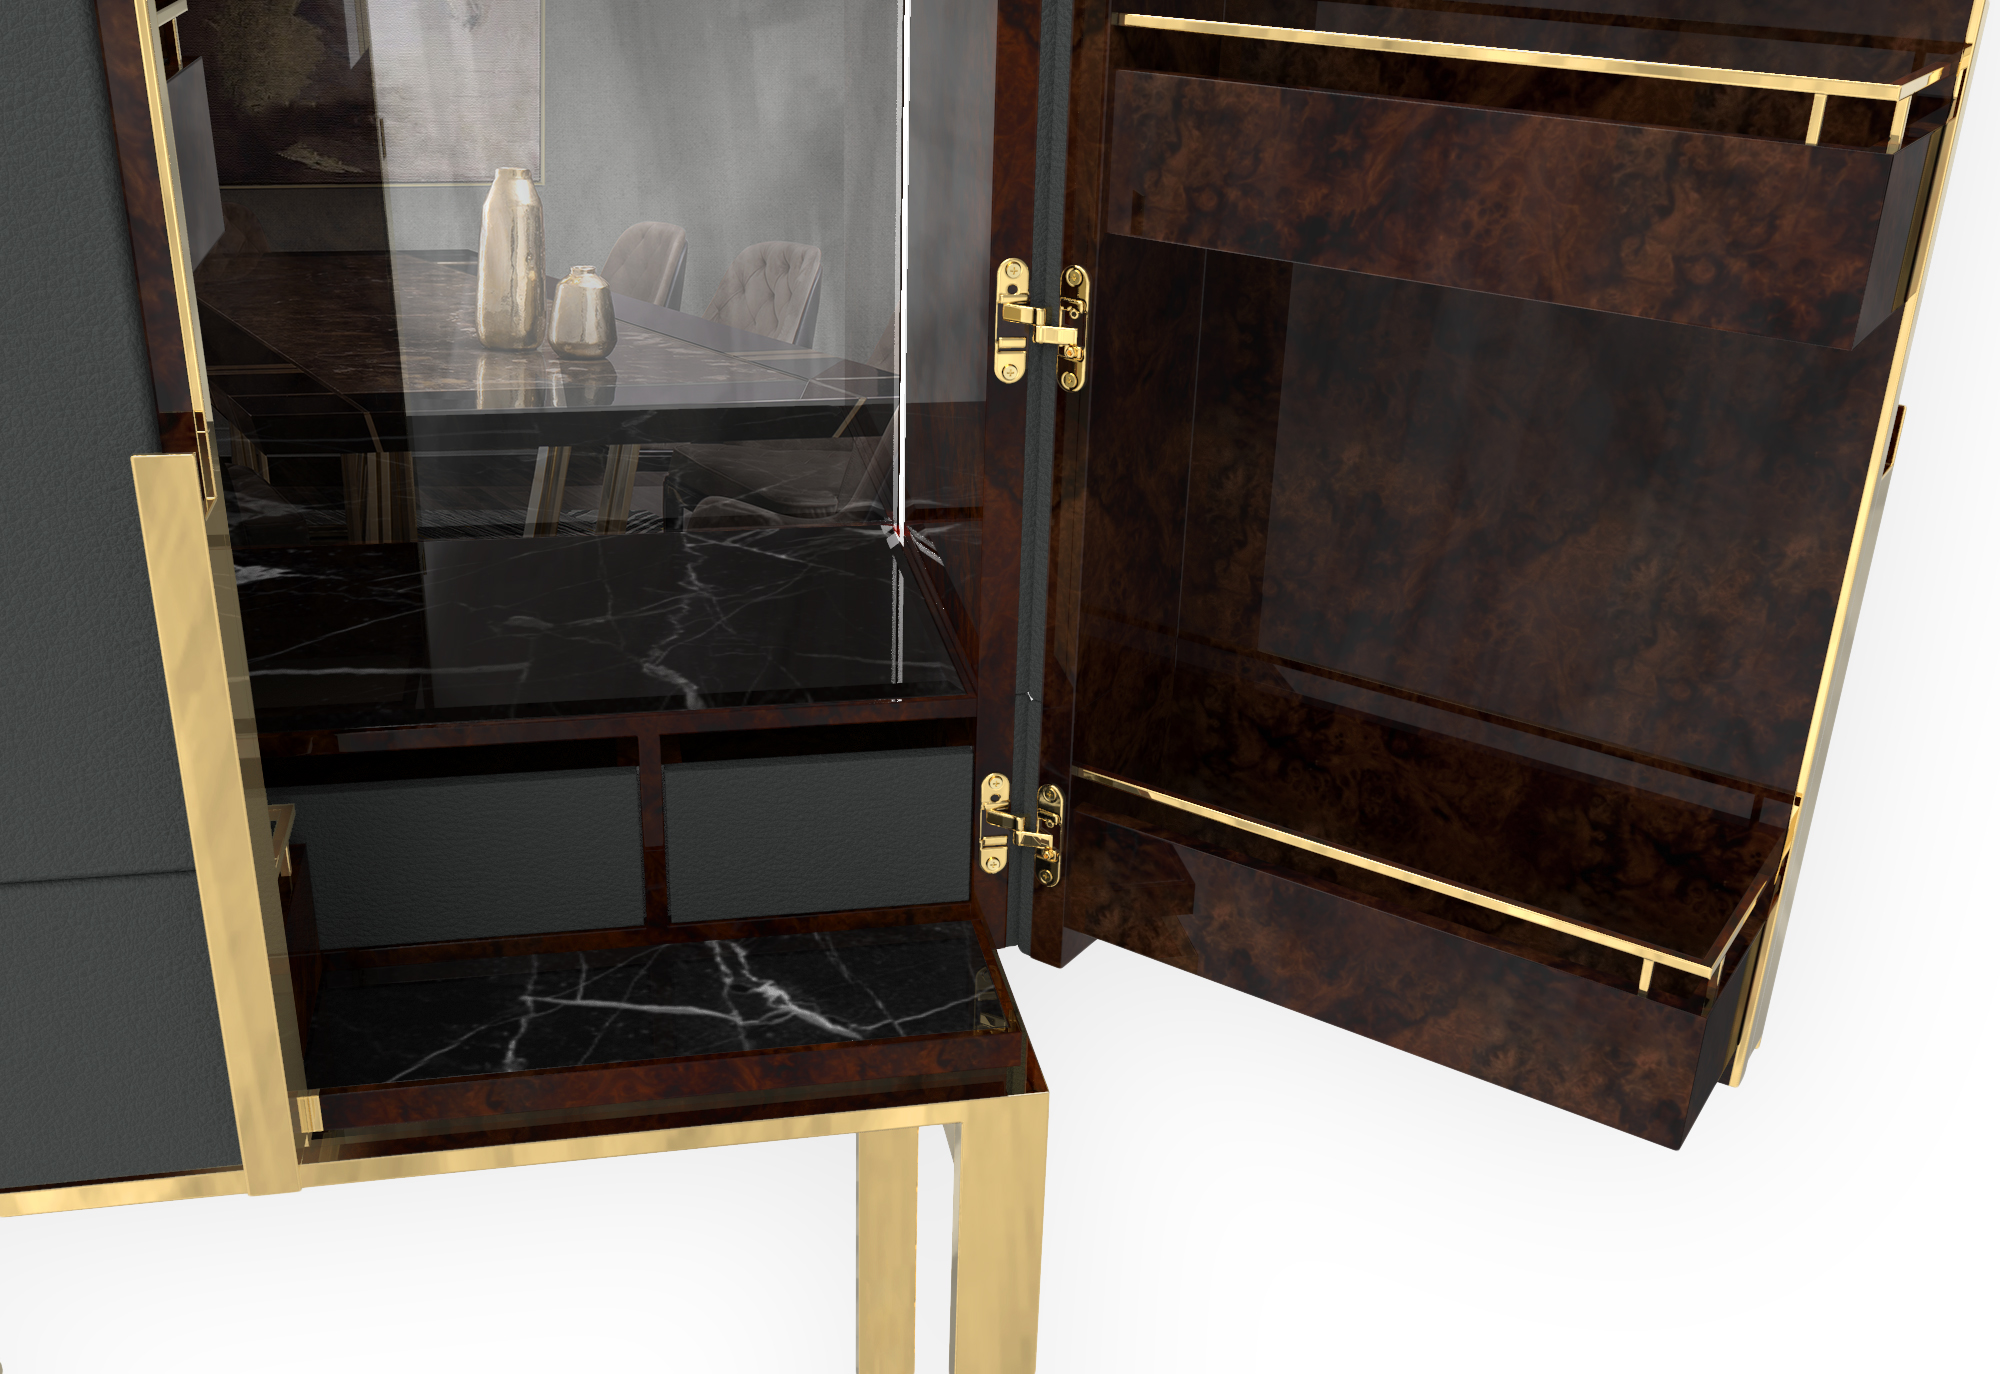 Luxury Design: Discover Our New Bar Cabinet luxury furniture collection 5 New Additions to Luxxu's Luxury Furniture Collection LLOYD bar cabinet detail luxury furniture collection 5 New Additions to Luxxu's Luxury Furniture Collection LLOYD bar cabinet detail